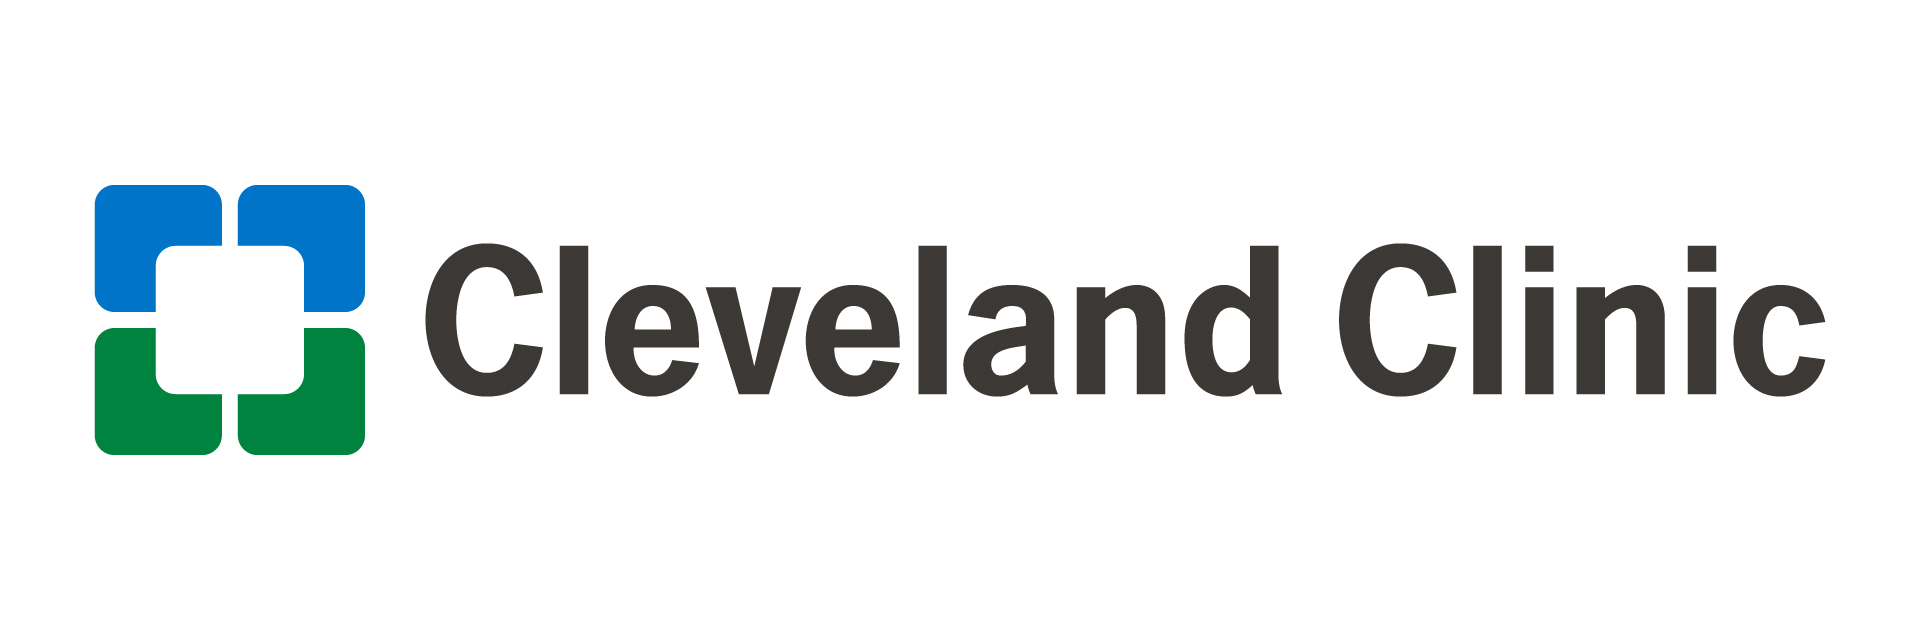 Cleveland Clinic Health System logo